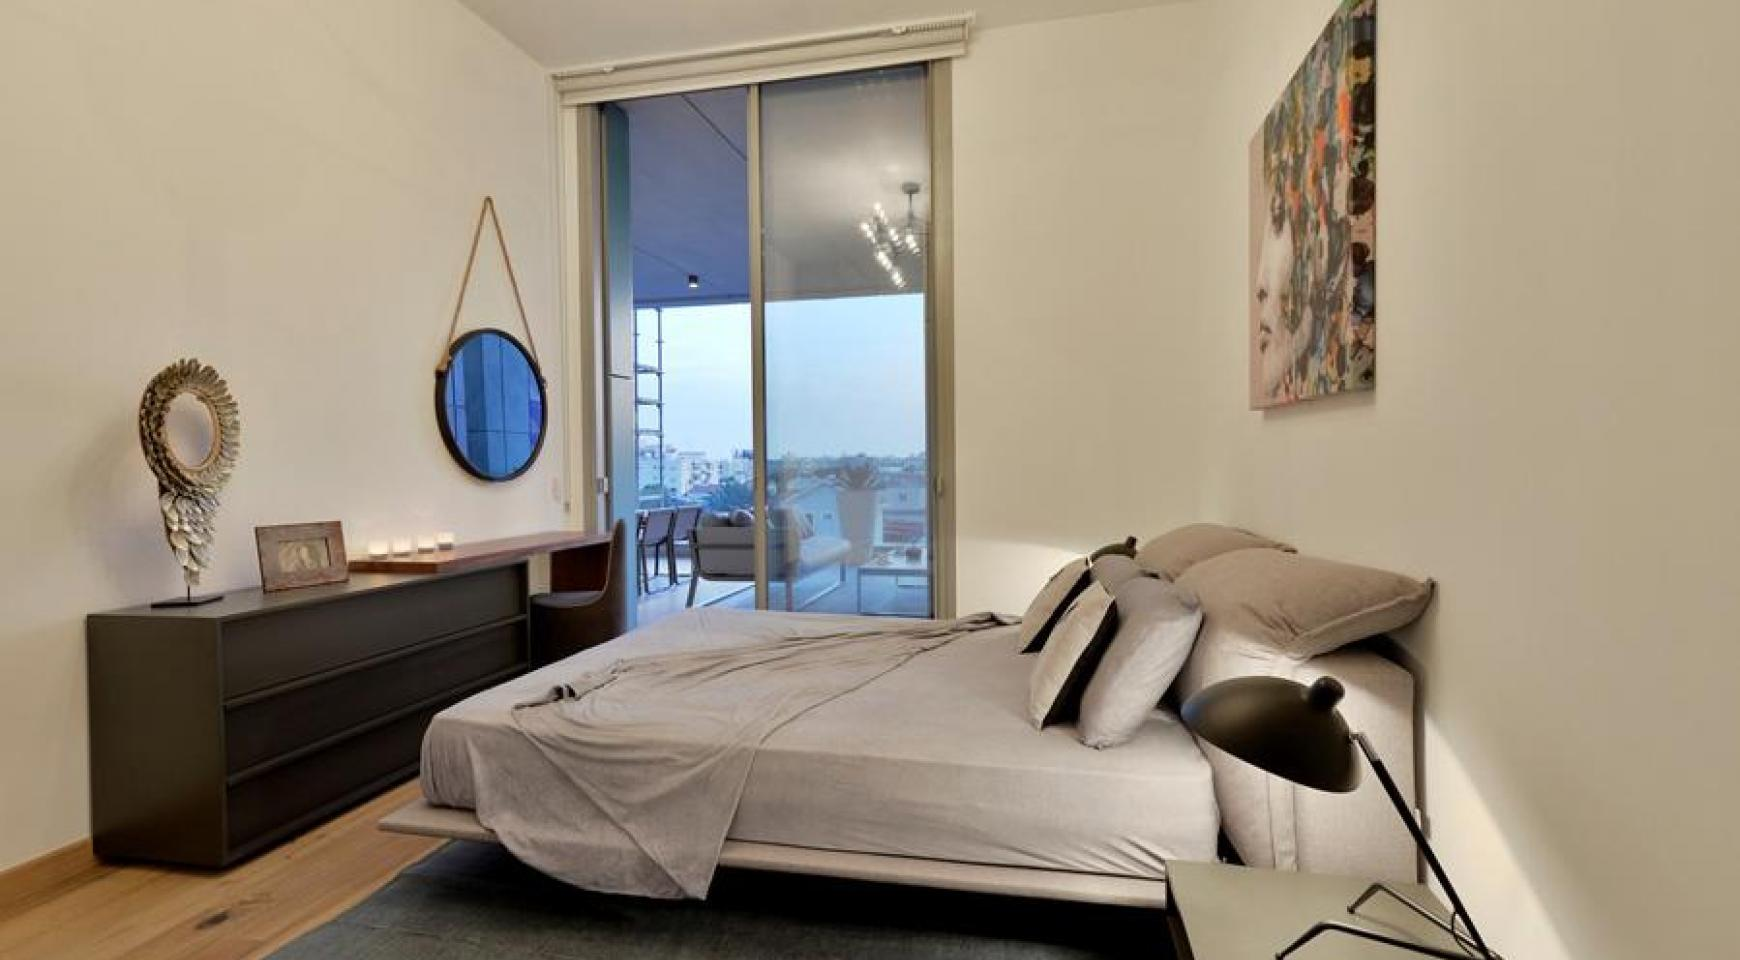 Elite 3 Bedroom Apartment within a New Complex near the Sea - 16